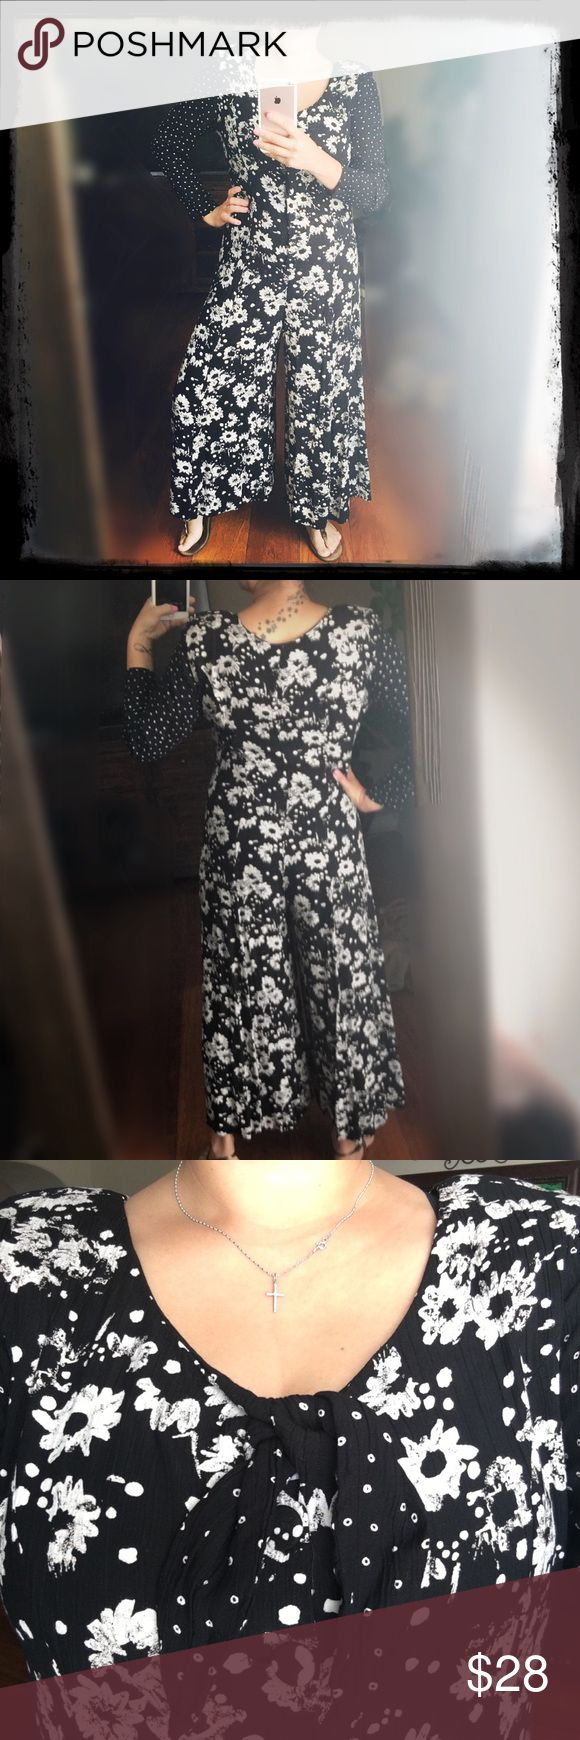 Vintage Black and White Jumpsuit Excellent Condition. Size not visible but I'm a large and it fits me. No Trades Other